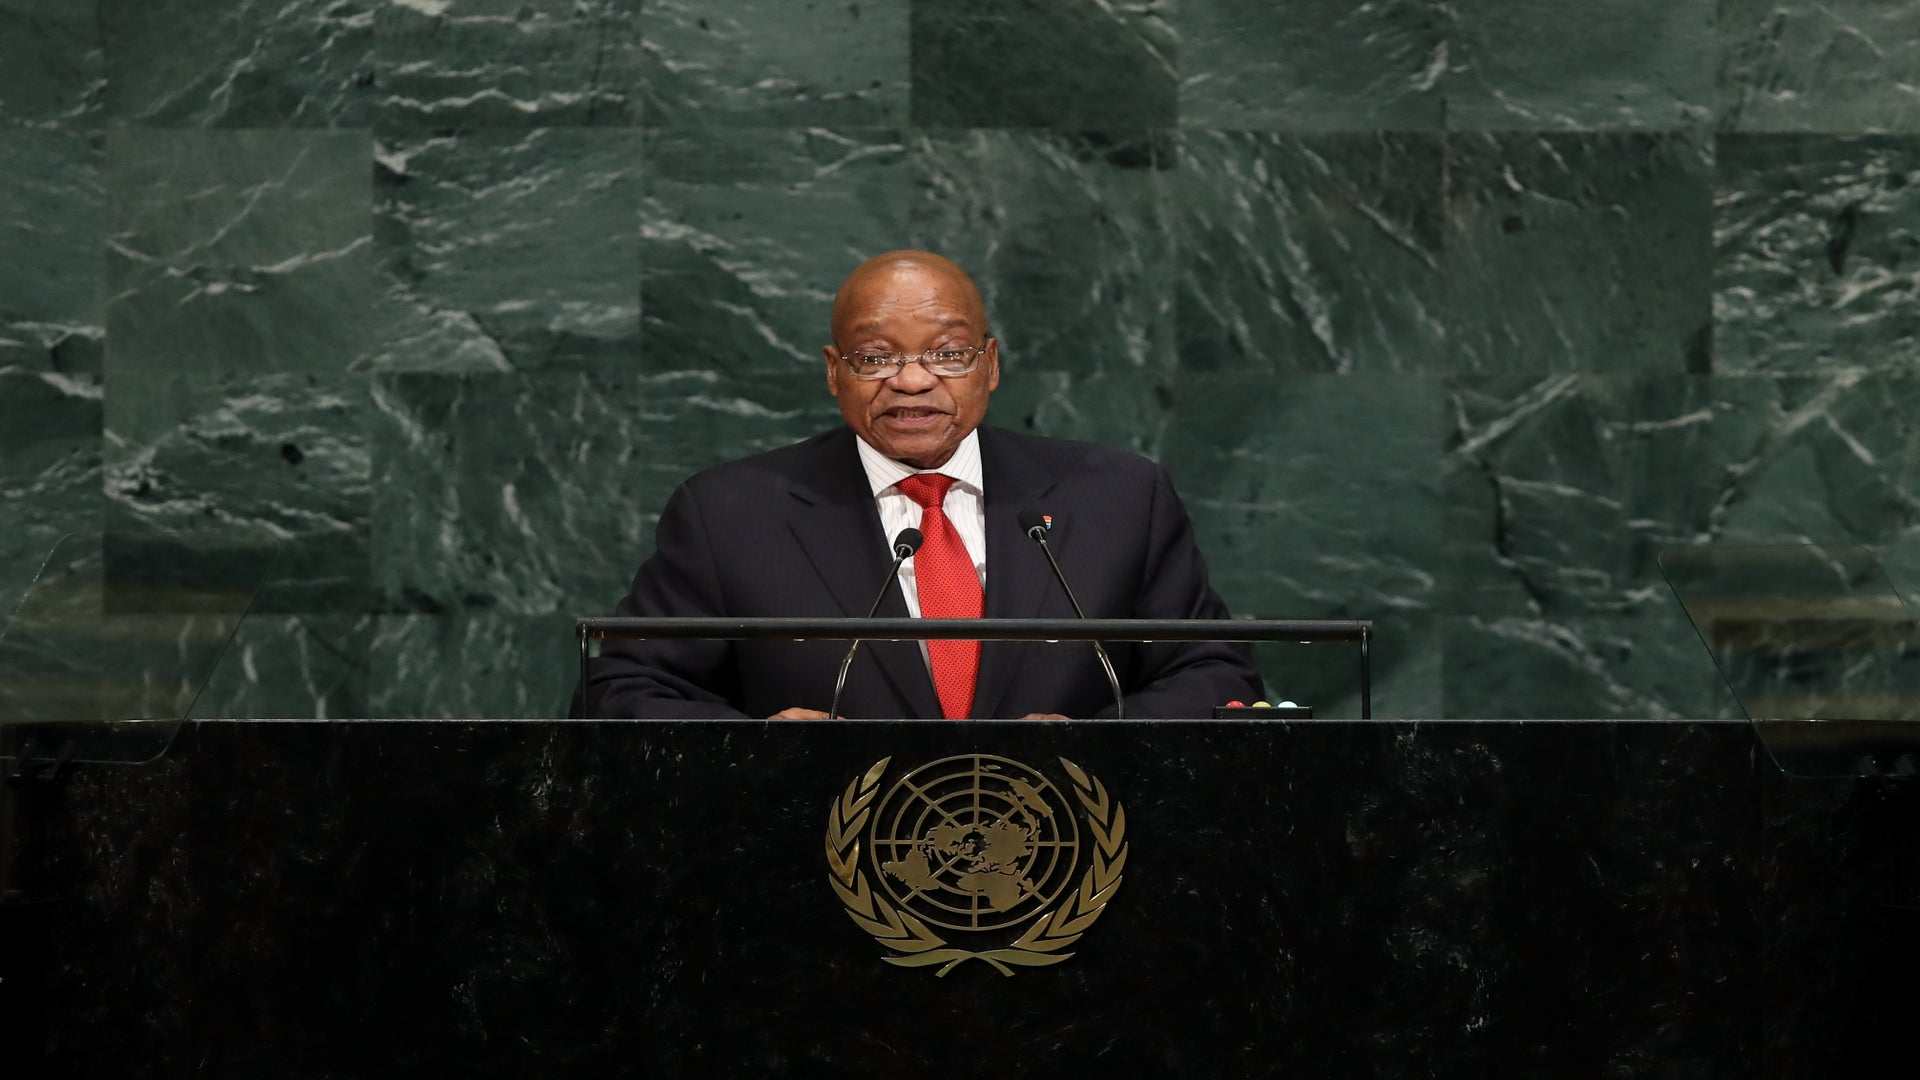 Former South African President Jacob Zuma Faces Corruption Trial